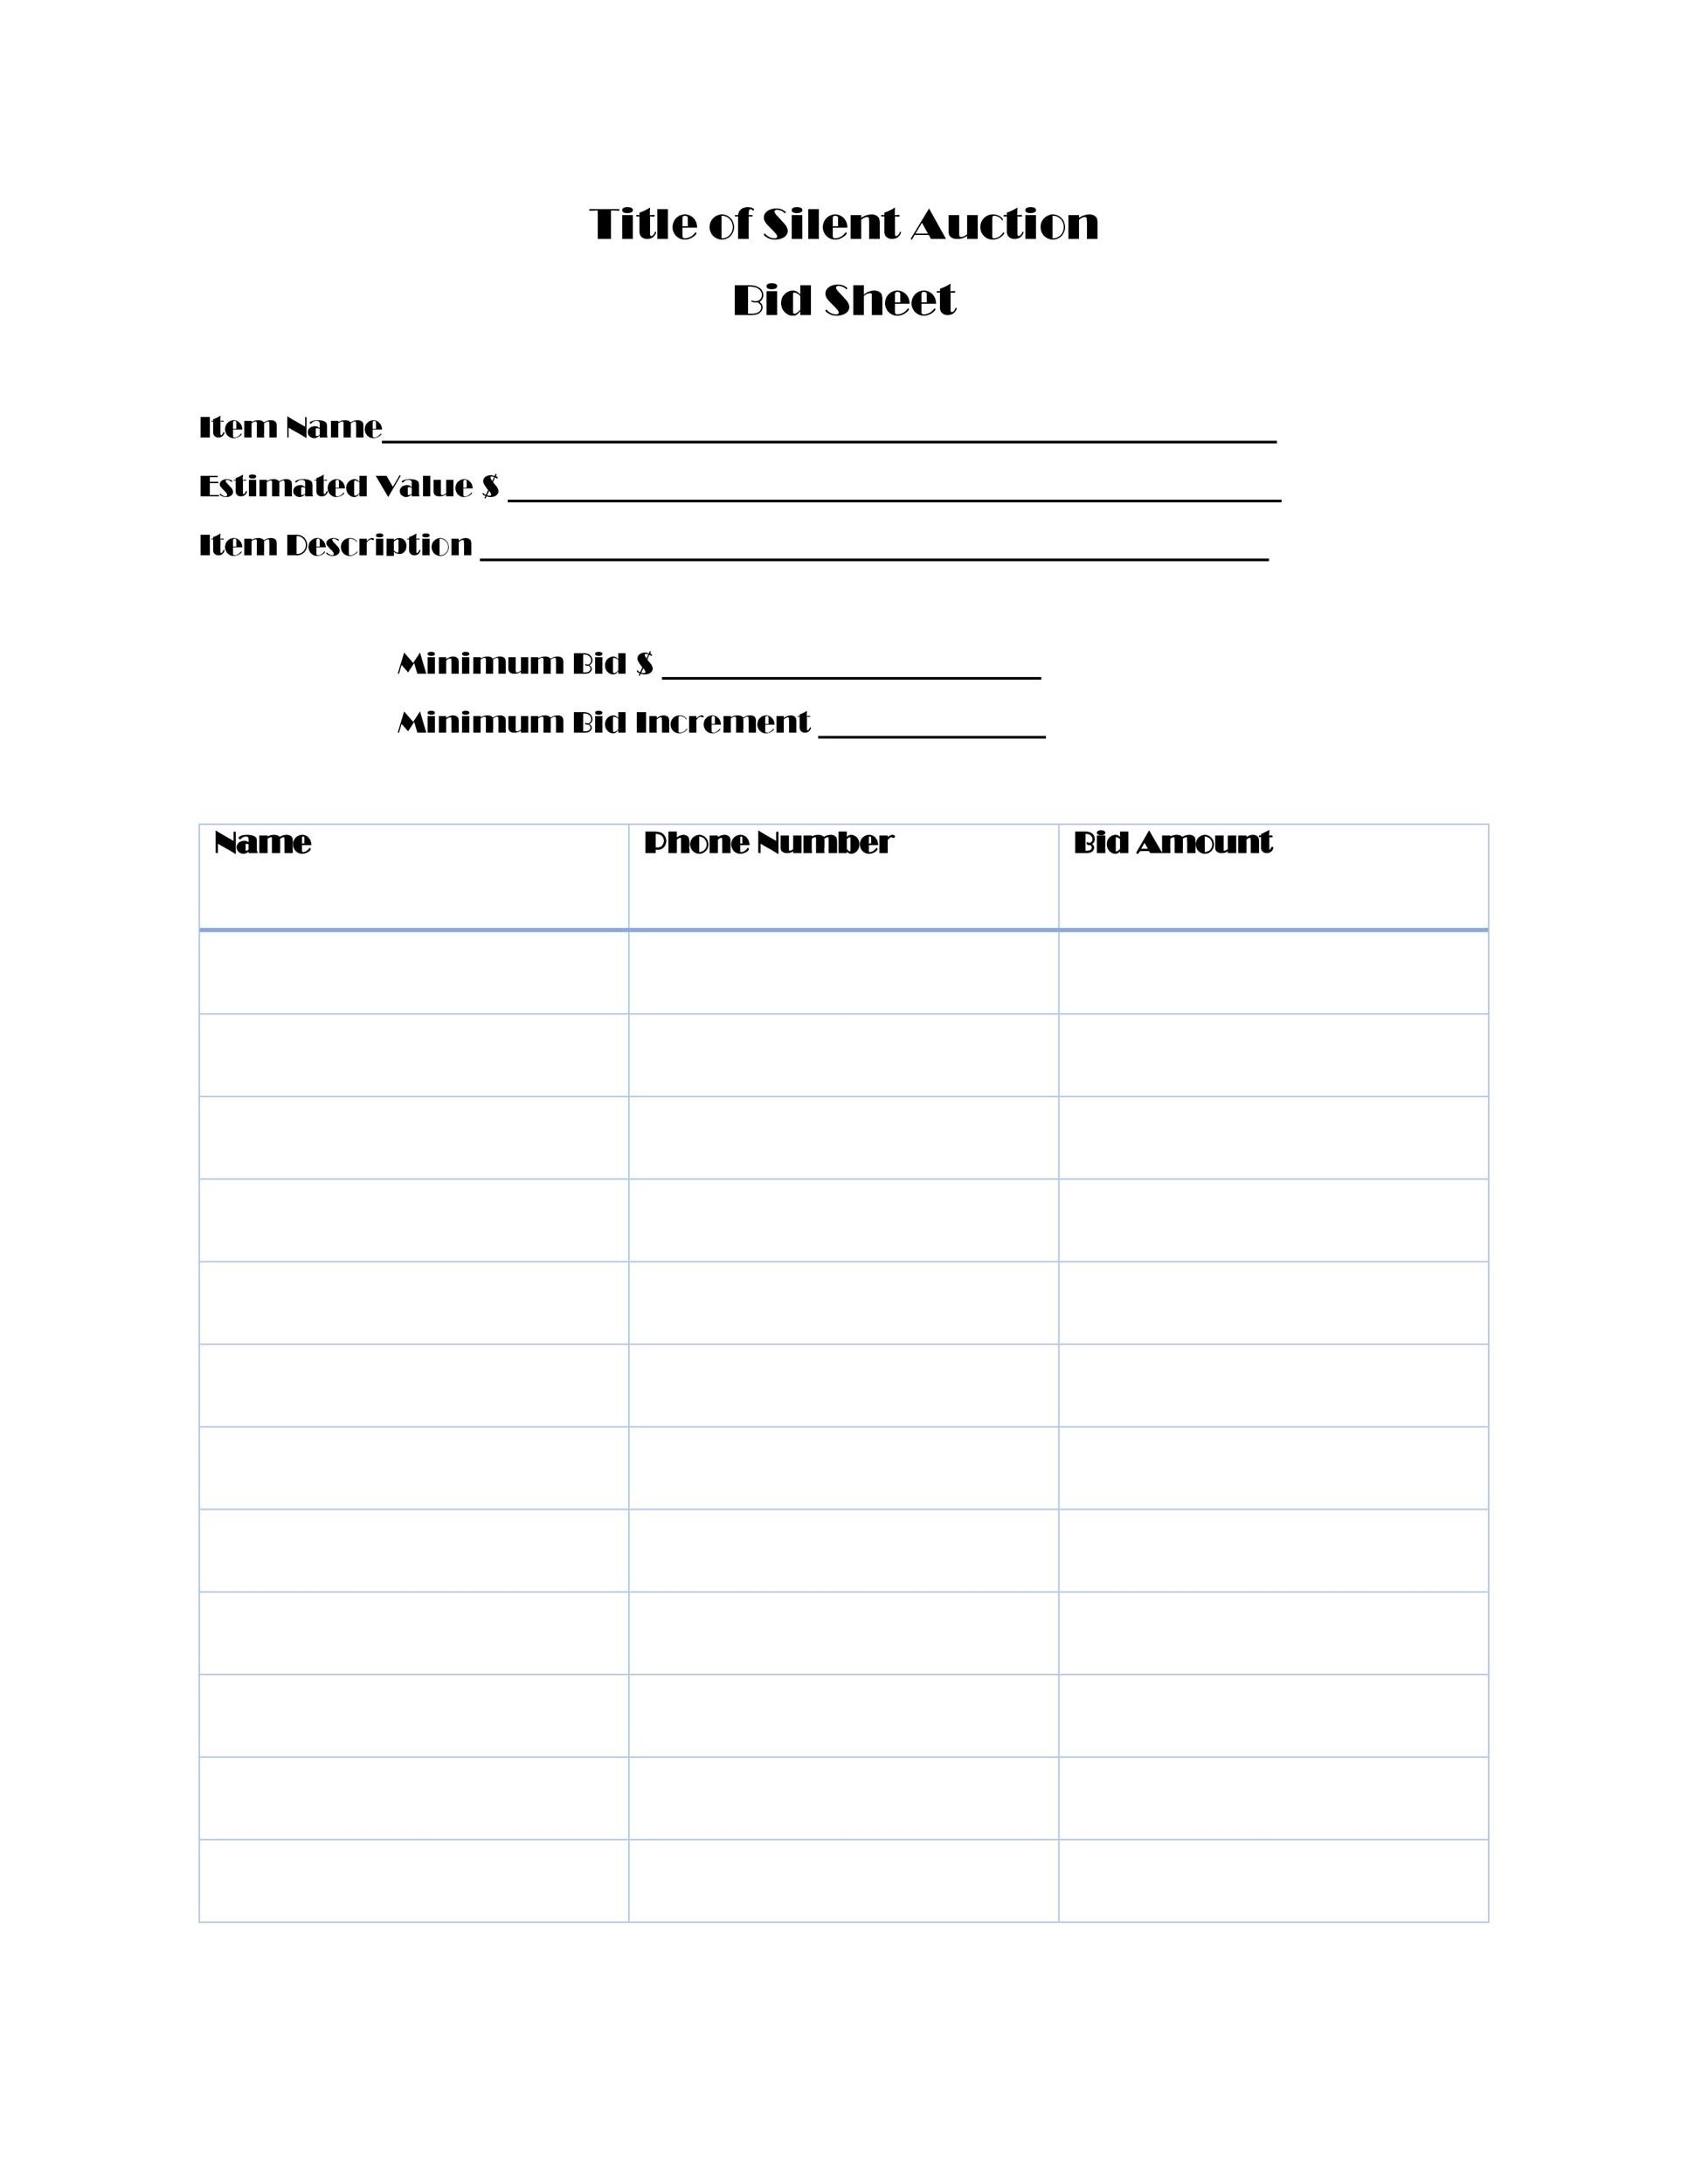 picture relating to Printable Silent Auction Bid Sheets called 40+ Peaceful Auction Bid Sheet Templates [Term, Excel] ᐅ